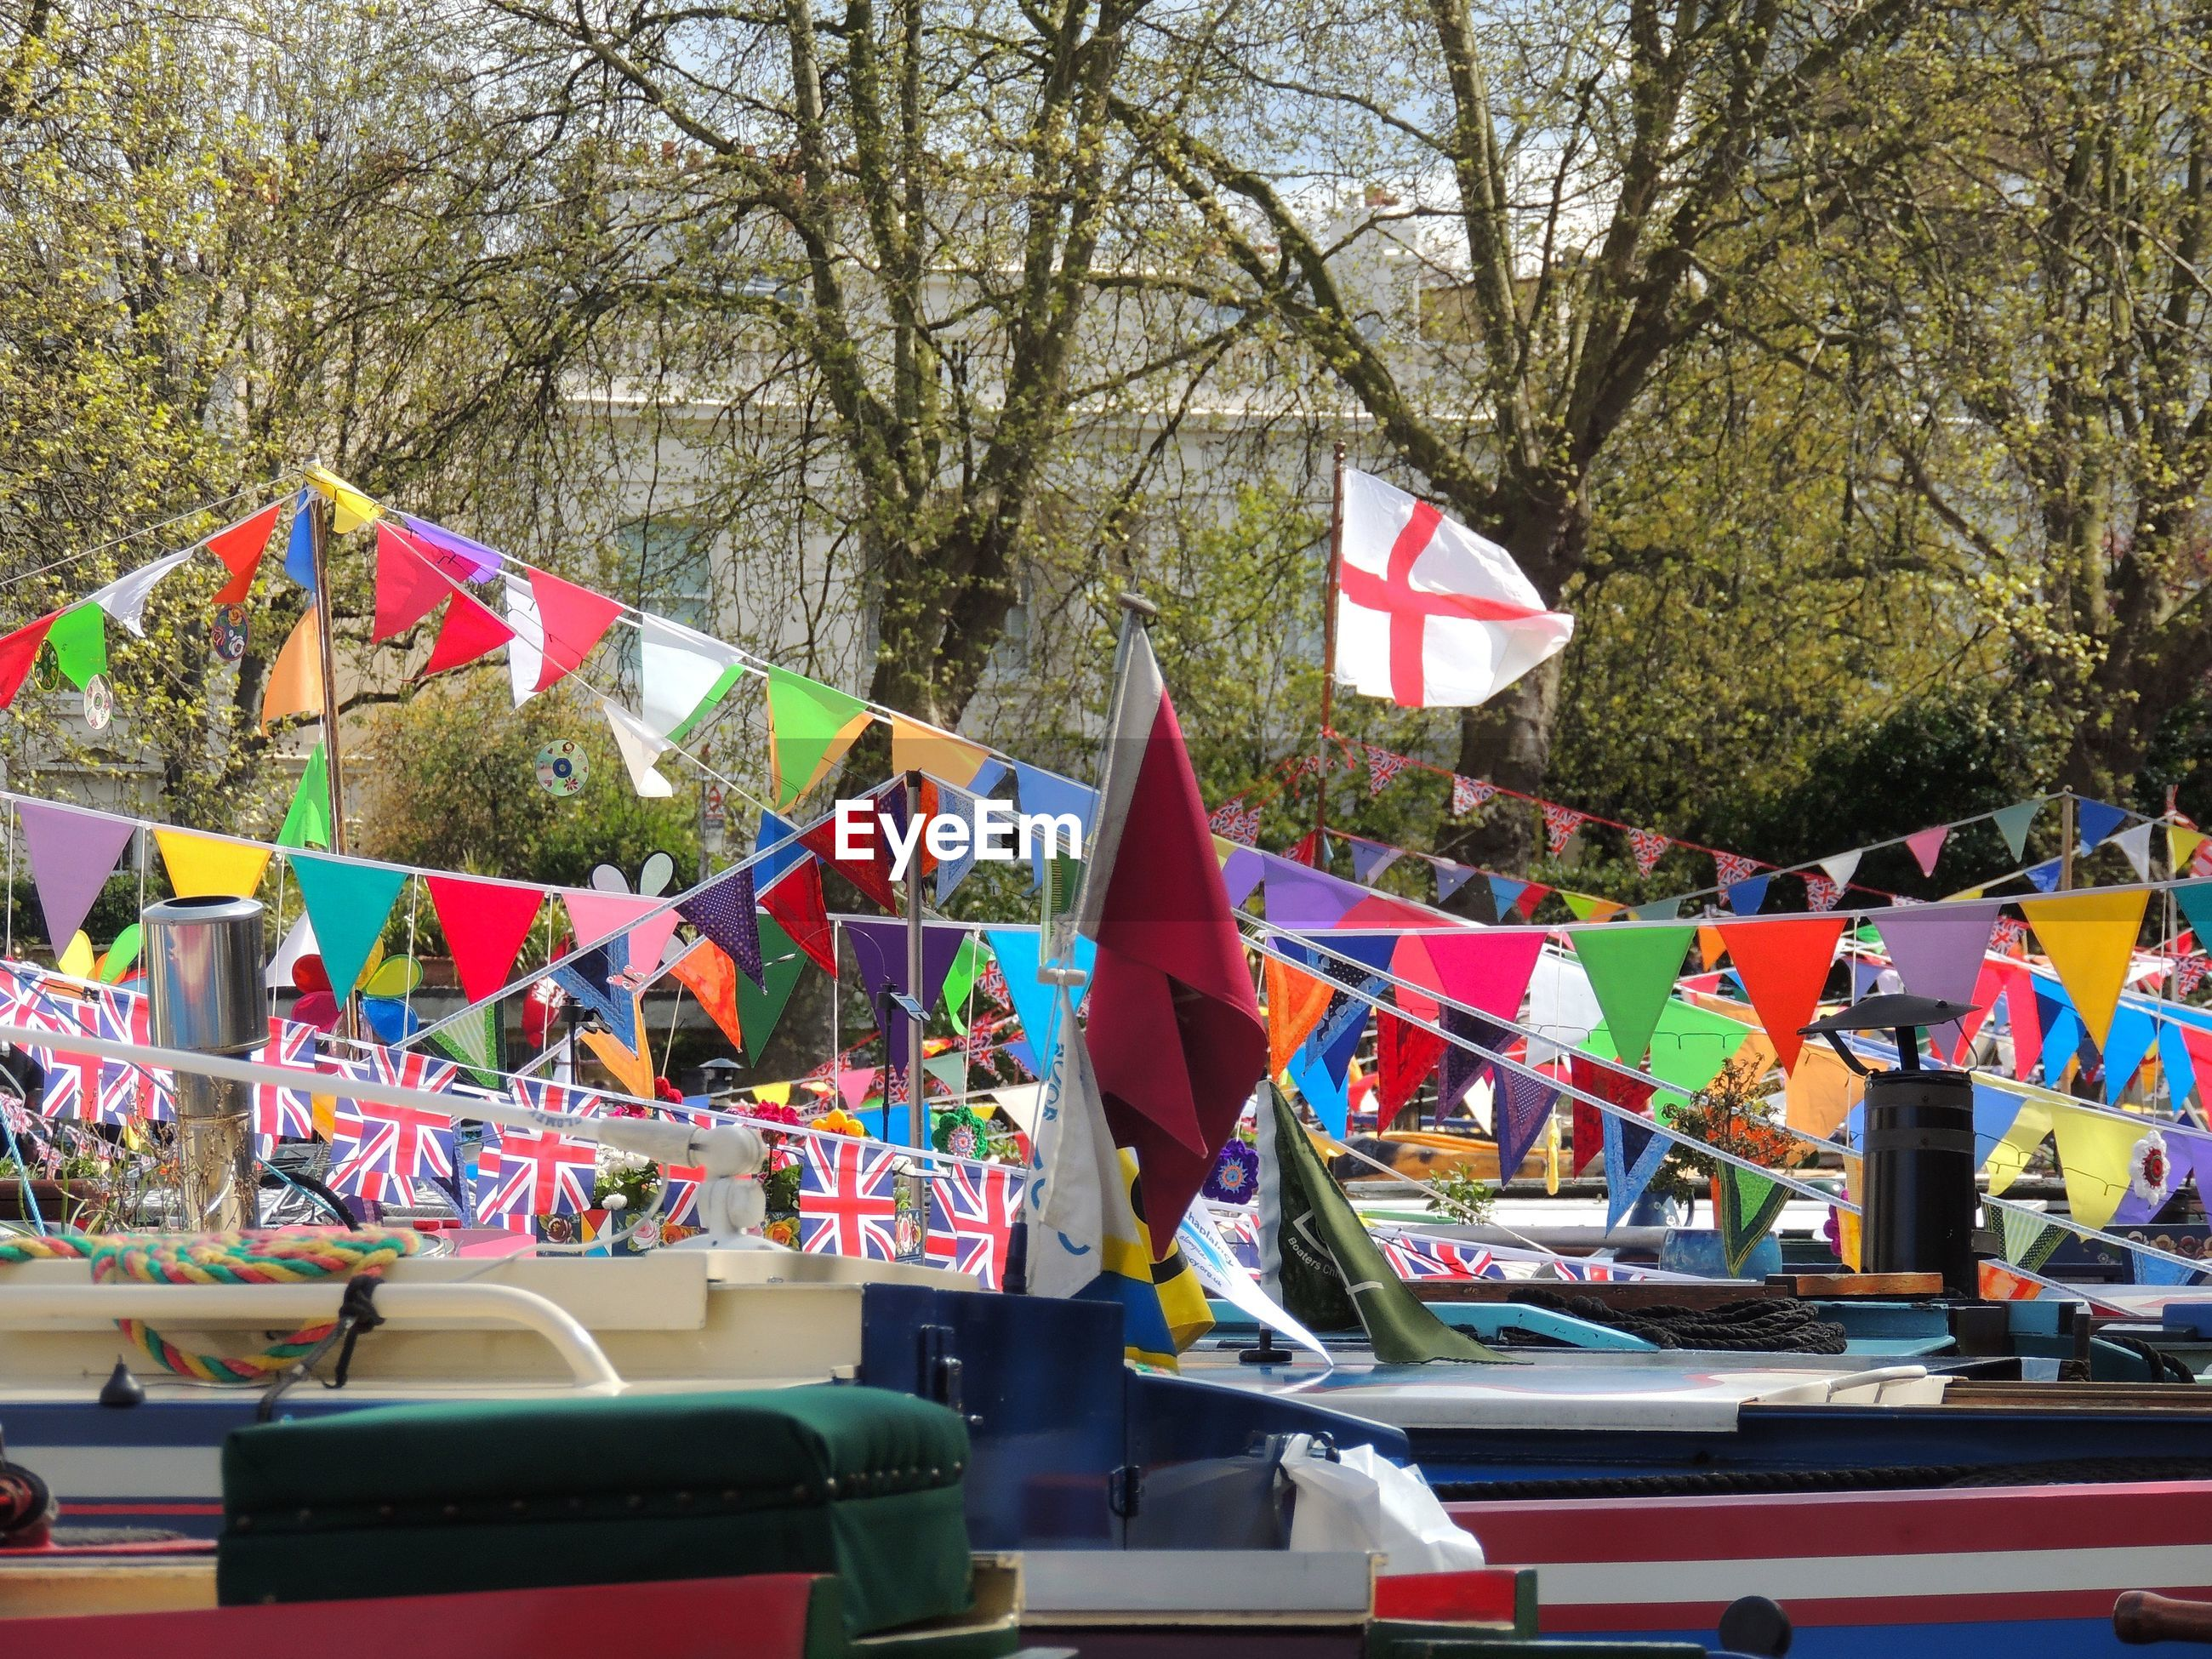 Colorful buntings over boats against trees